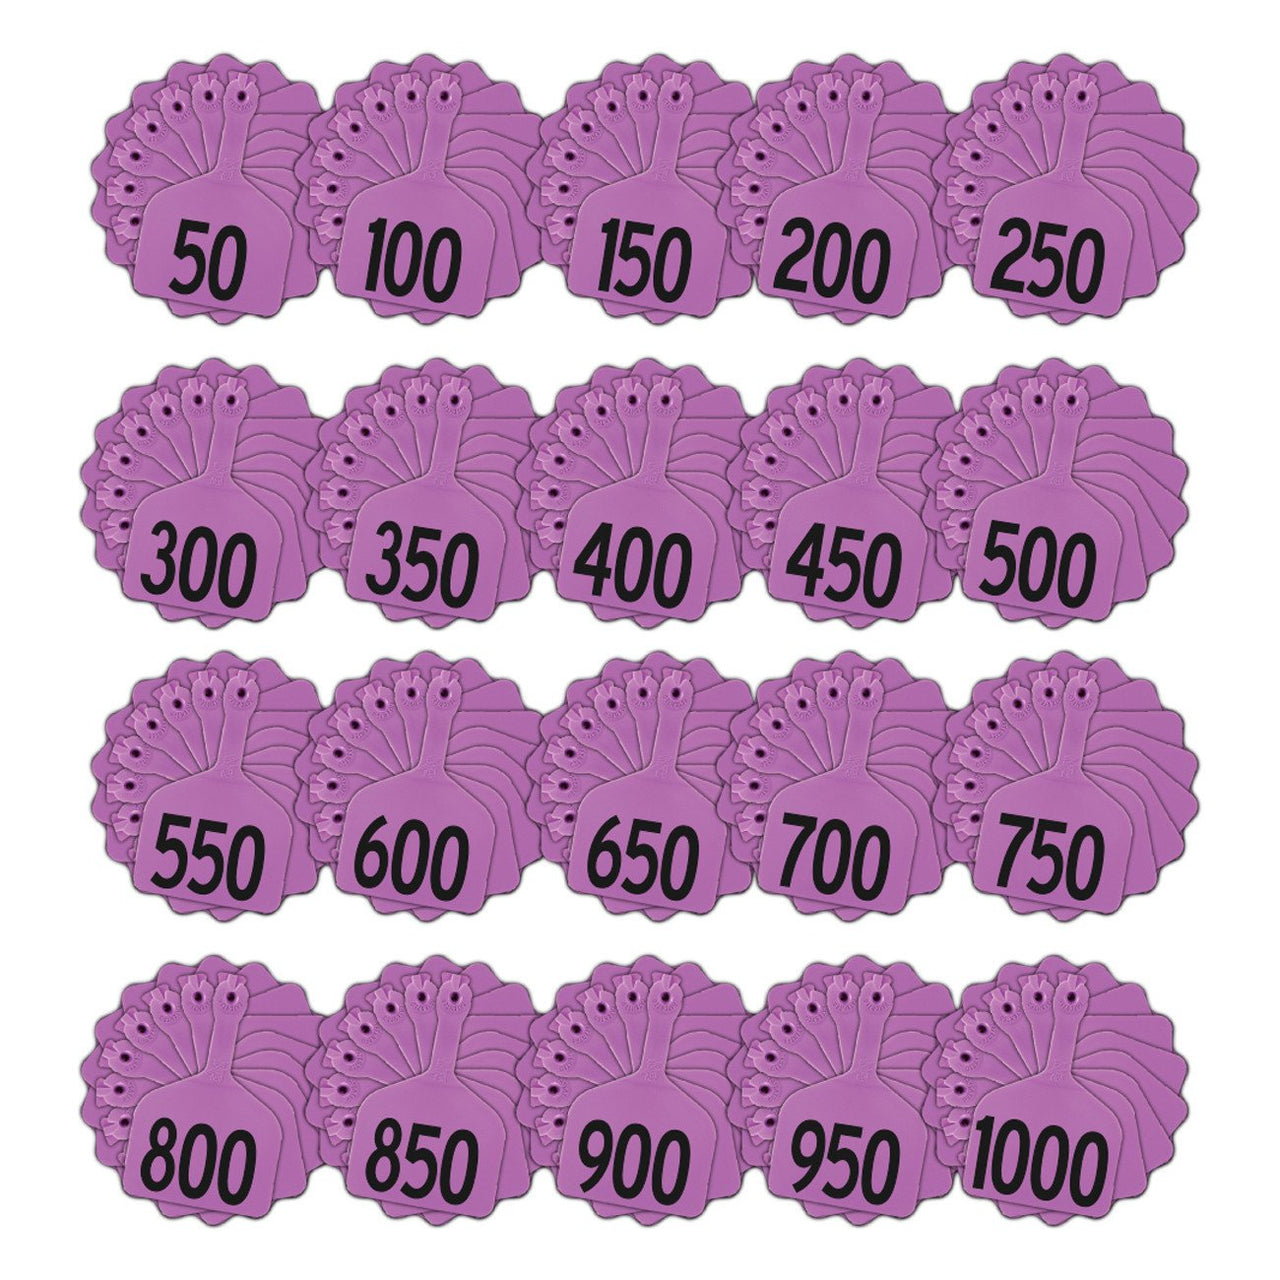 Z Tags Feedlot Pre-Printed Tags Numbered 1-1000 (Purple) - Feedlot Tags Pre-Printed Tags Numbered 1-1007 Z Tags - Canada